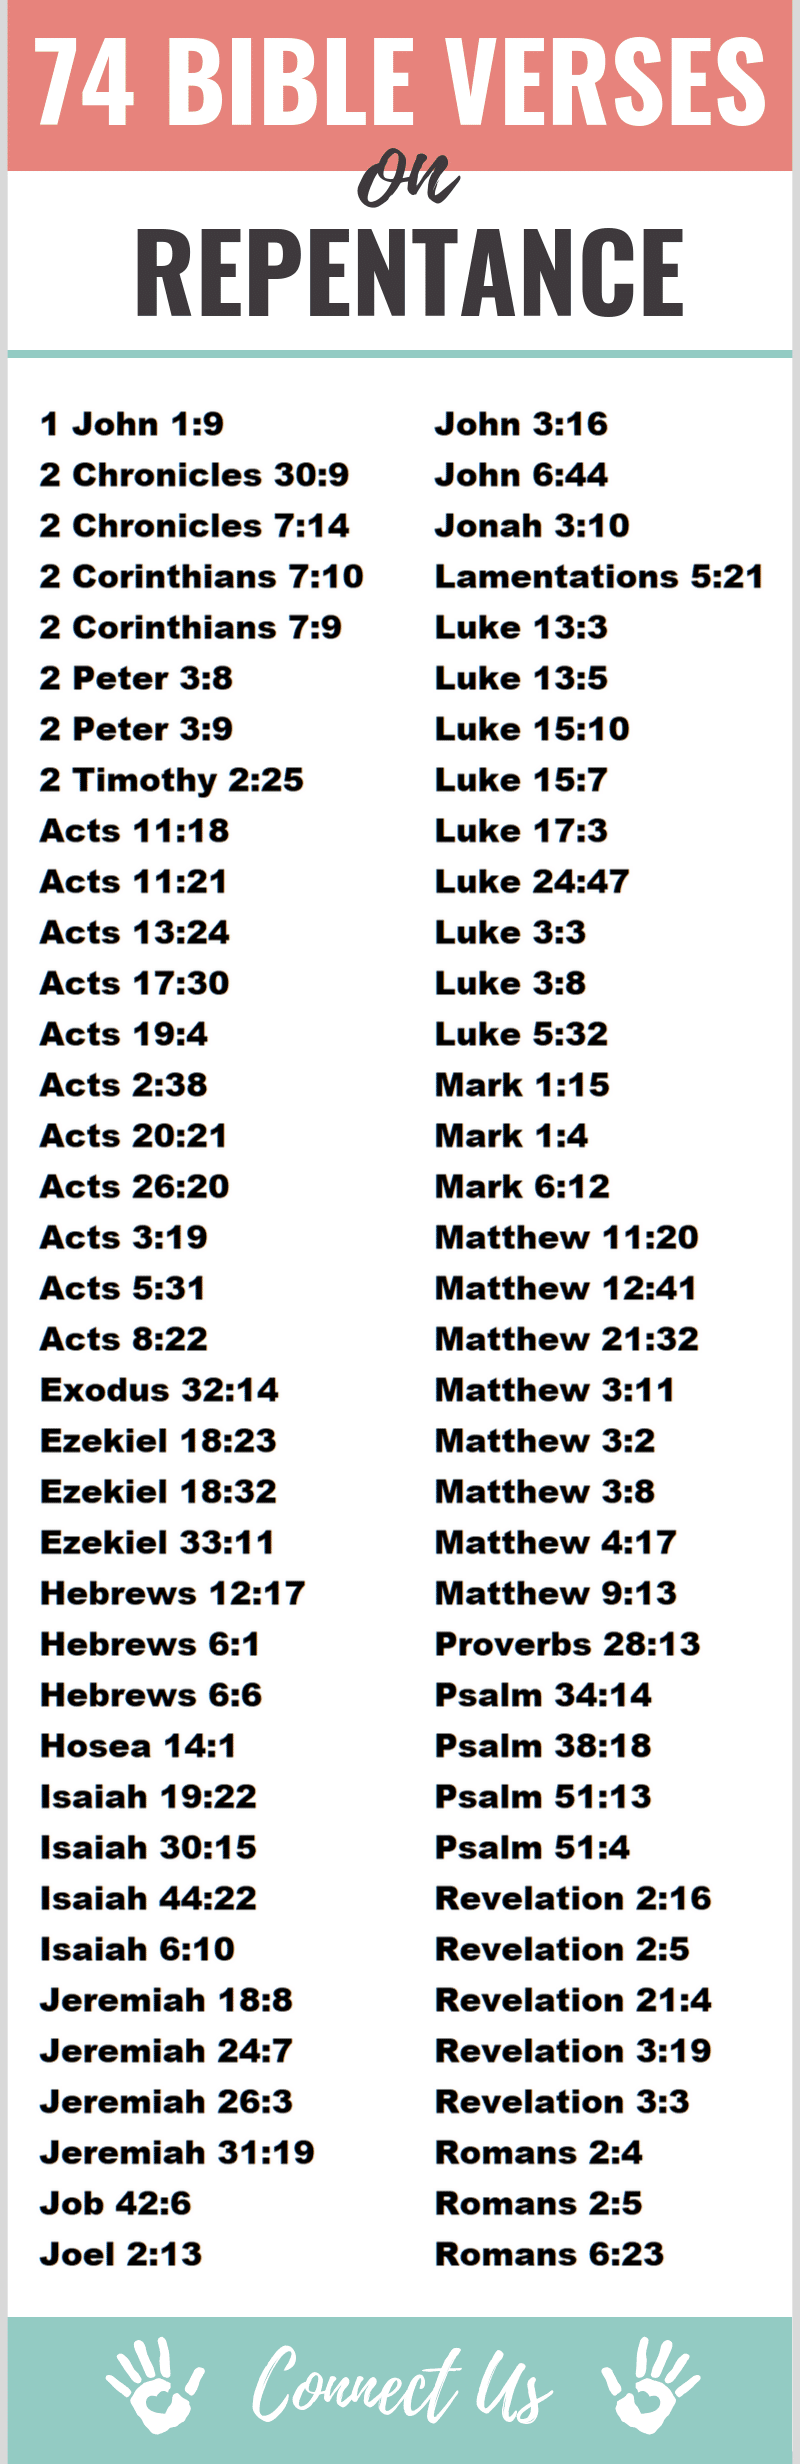 Bible Verses on Repentance